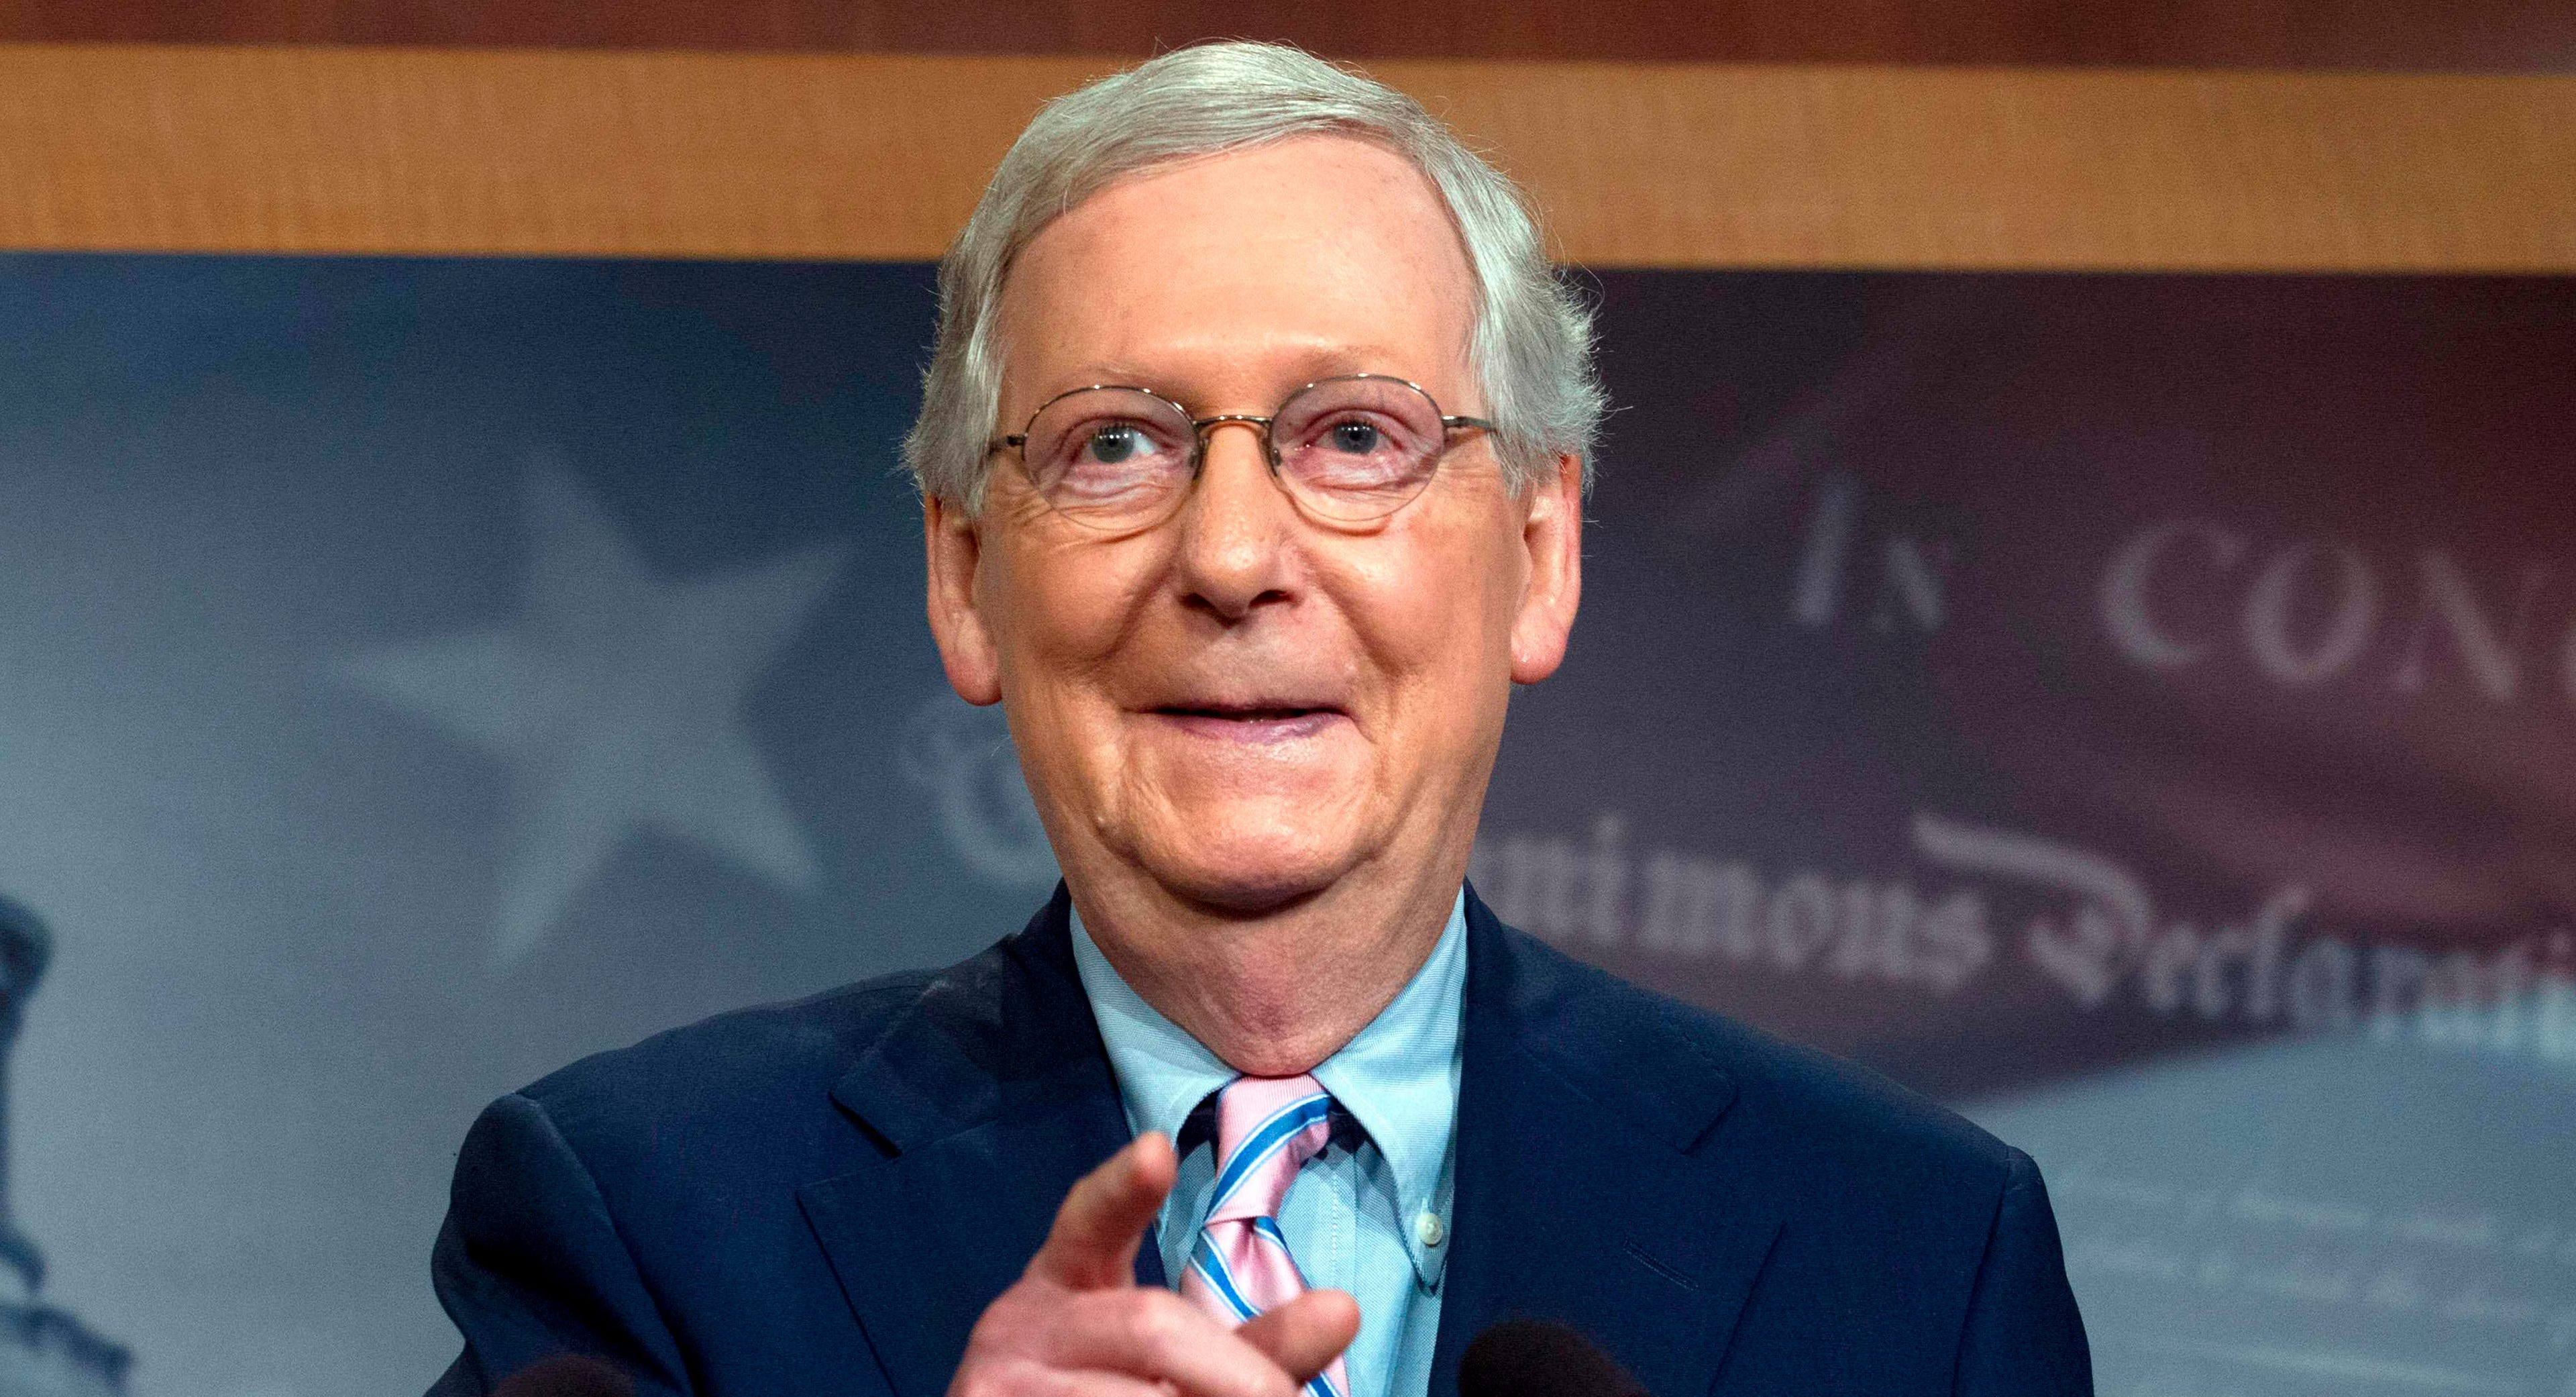 In this file photo taken on Oct. 6, 2018,  Senate Majority Leader Mitch McConnell, R-Ky., speaks during a news conference following the confirmation vote of Supreme Court Justice Brett Kavanaugh on Capitol Hill in Washington.